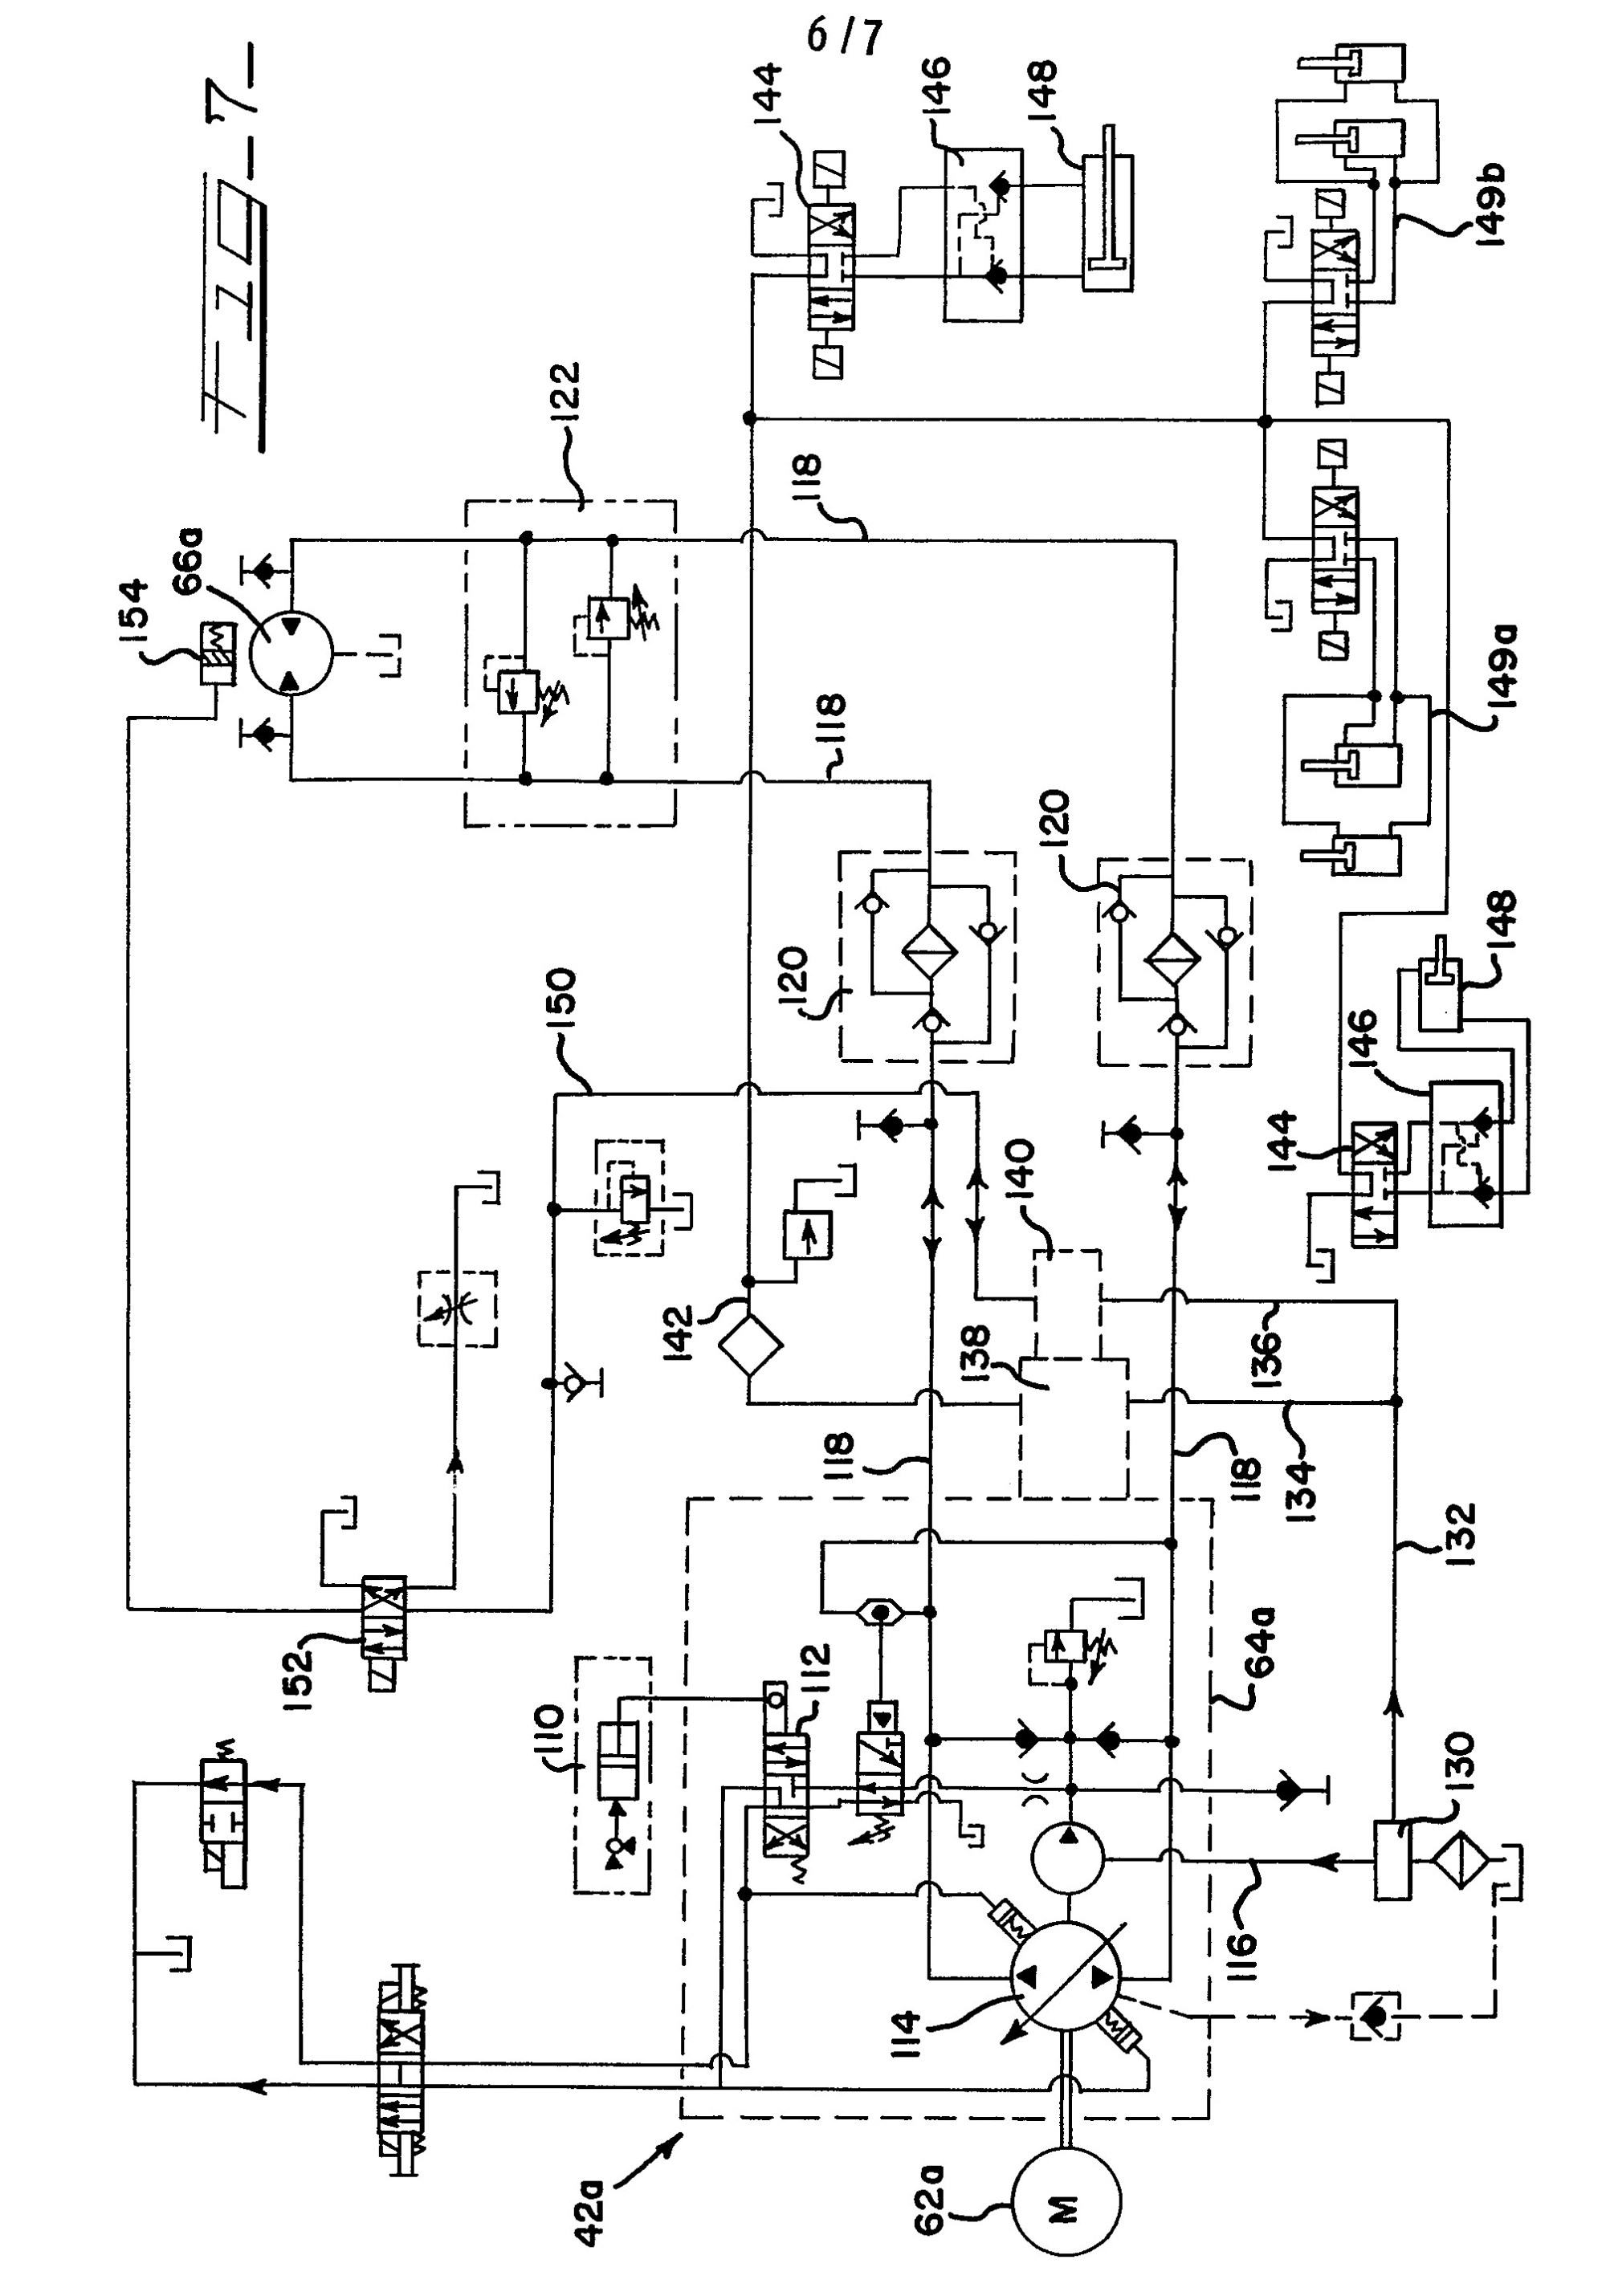 hight resolution of estate dryer wiring diagram wiring library mix whirlpool refrigerator wiring diagr whirlpool estate dryer wiring diagram